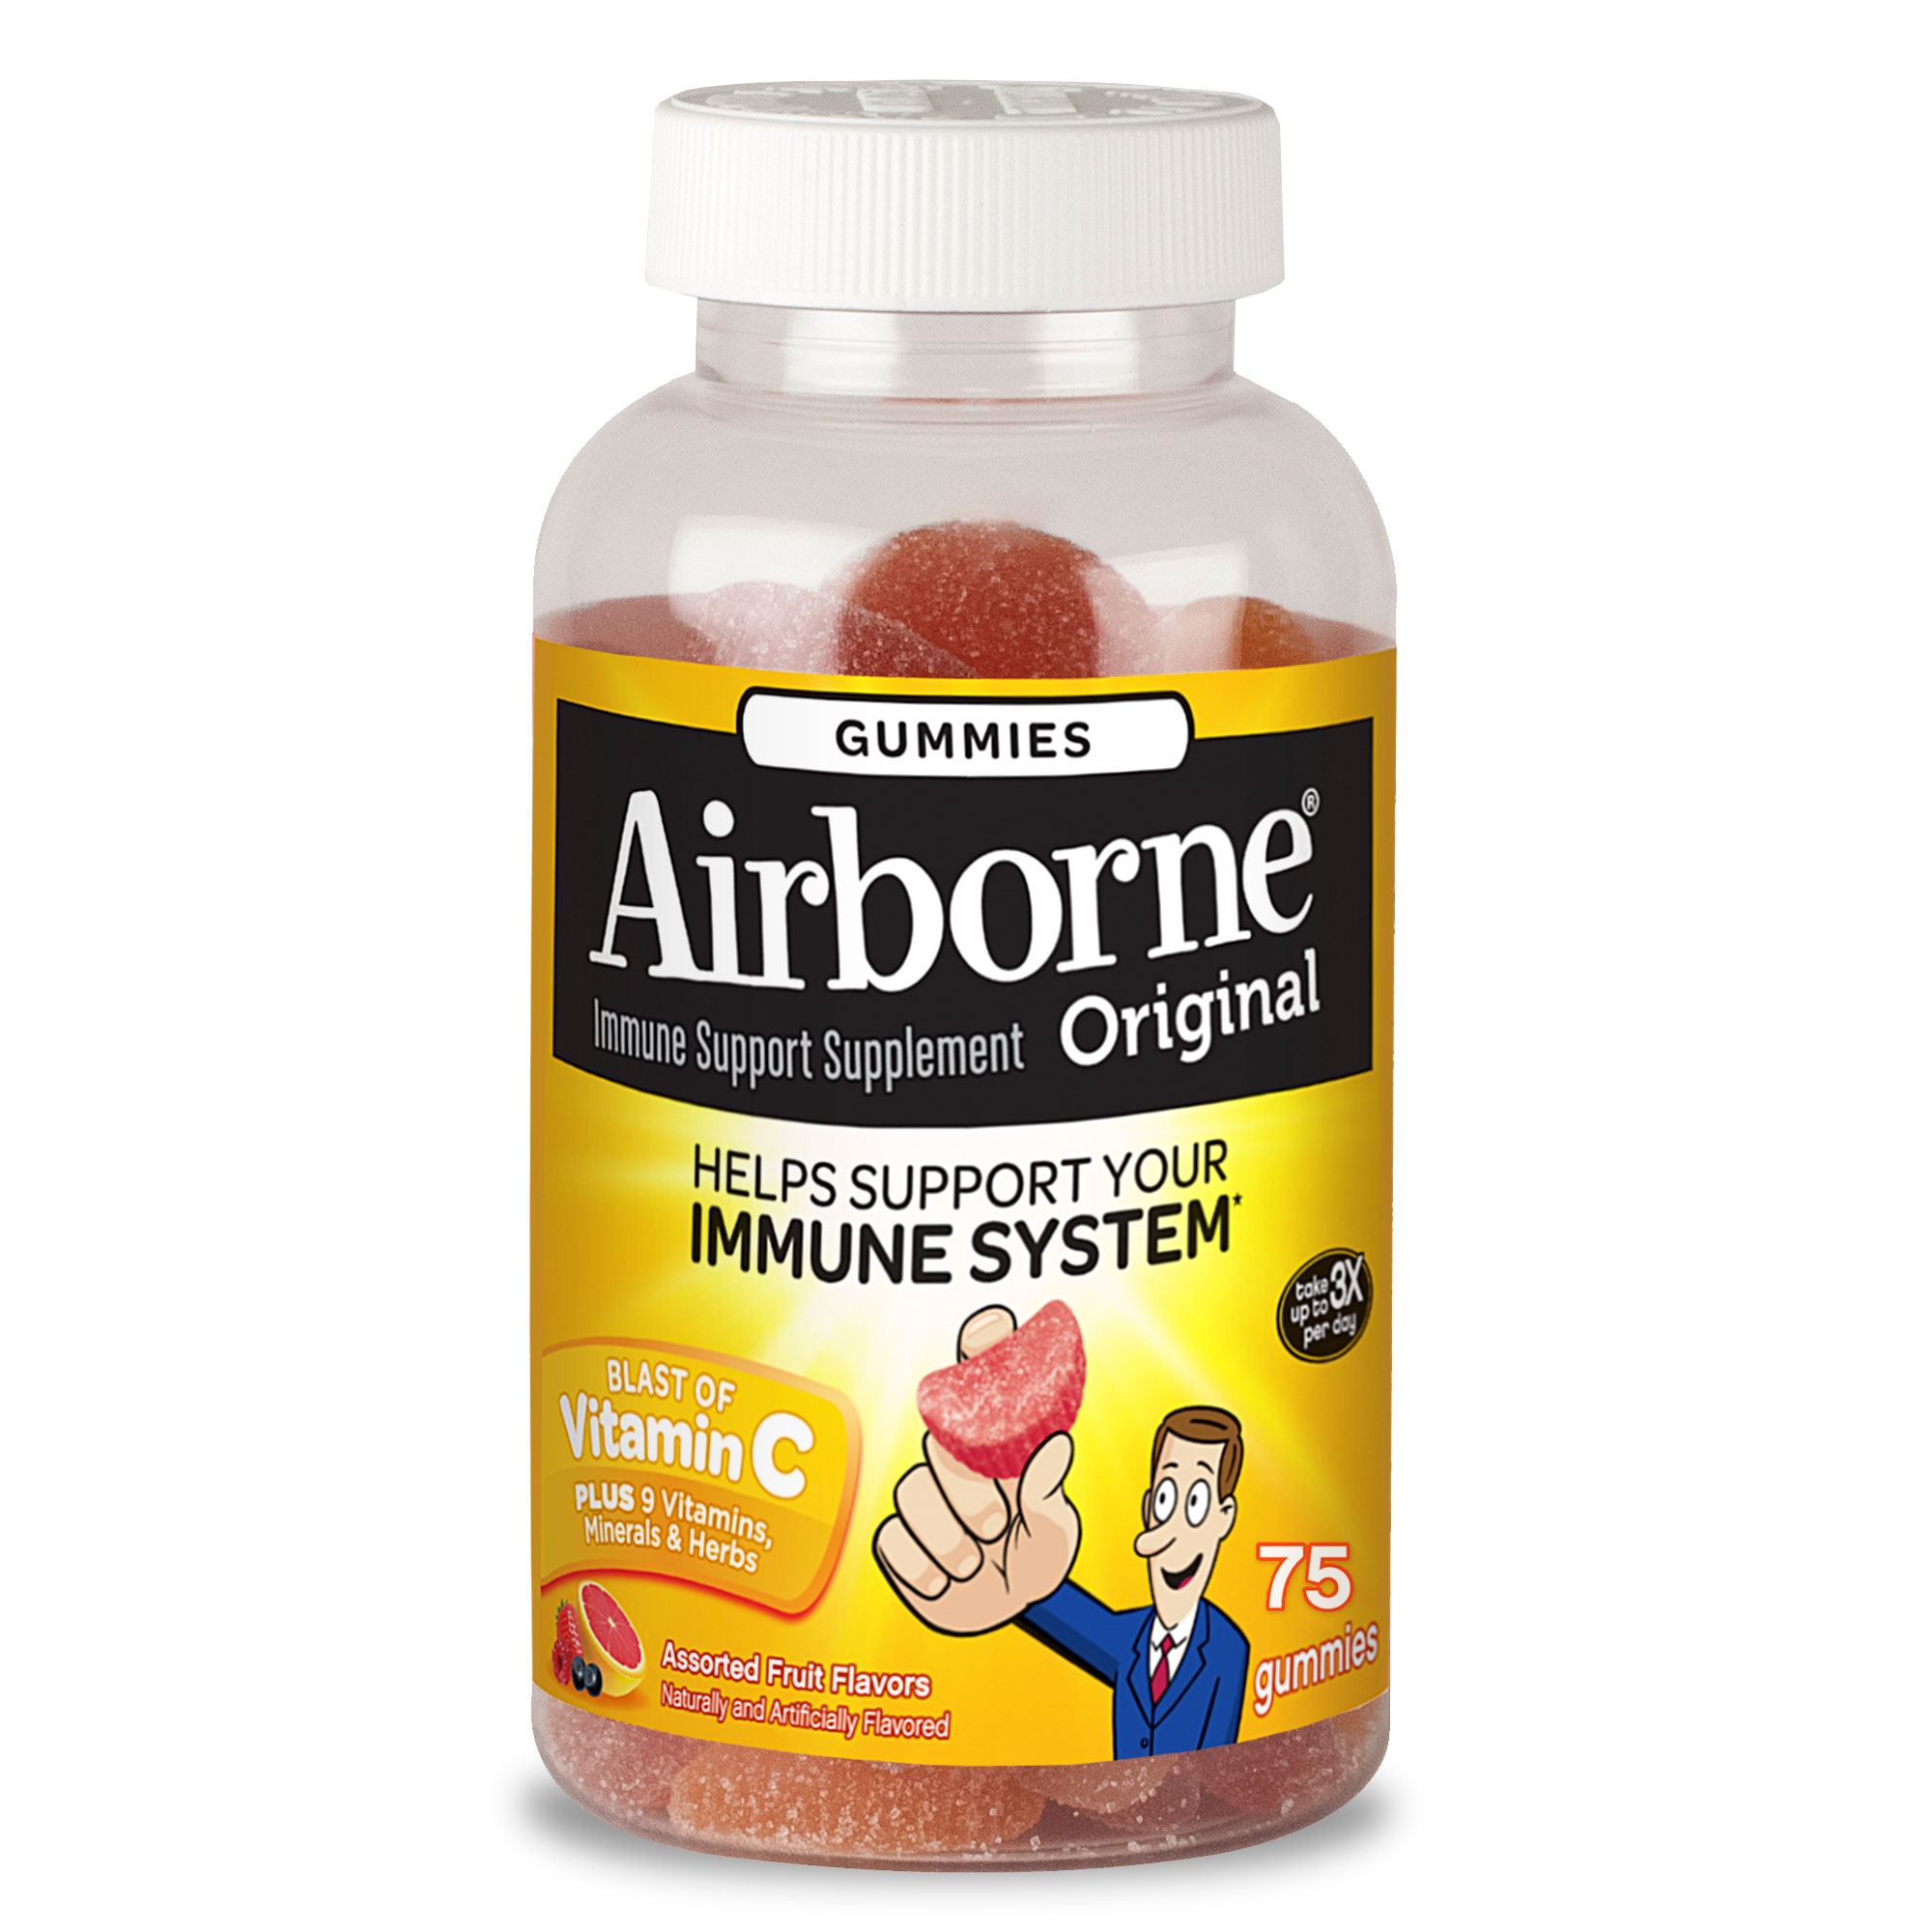 Image of Airborne Assorted Fruit Flavored Gummies, 75 count - 1000mg of Vitamin C and Minerals & Herbs Immune Support